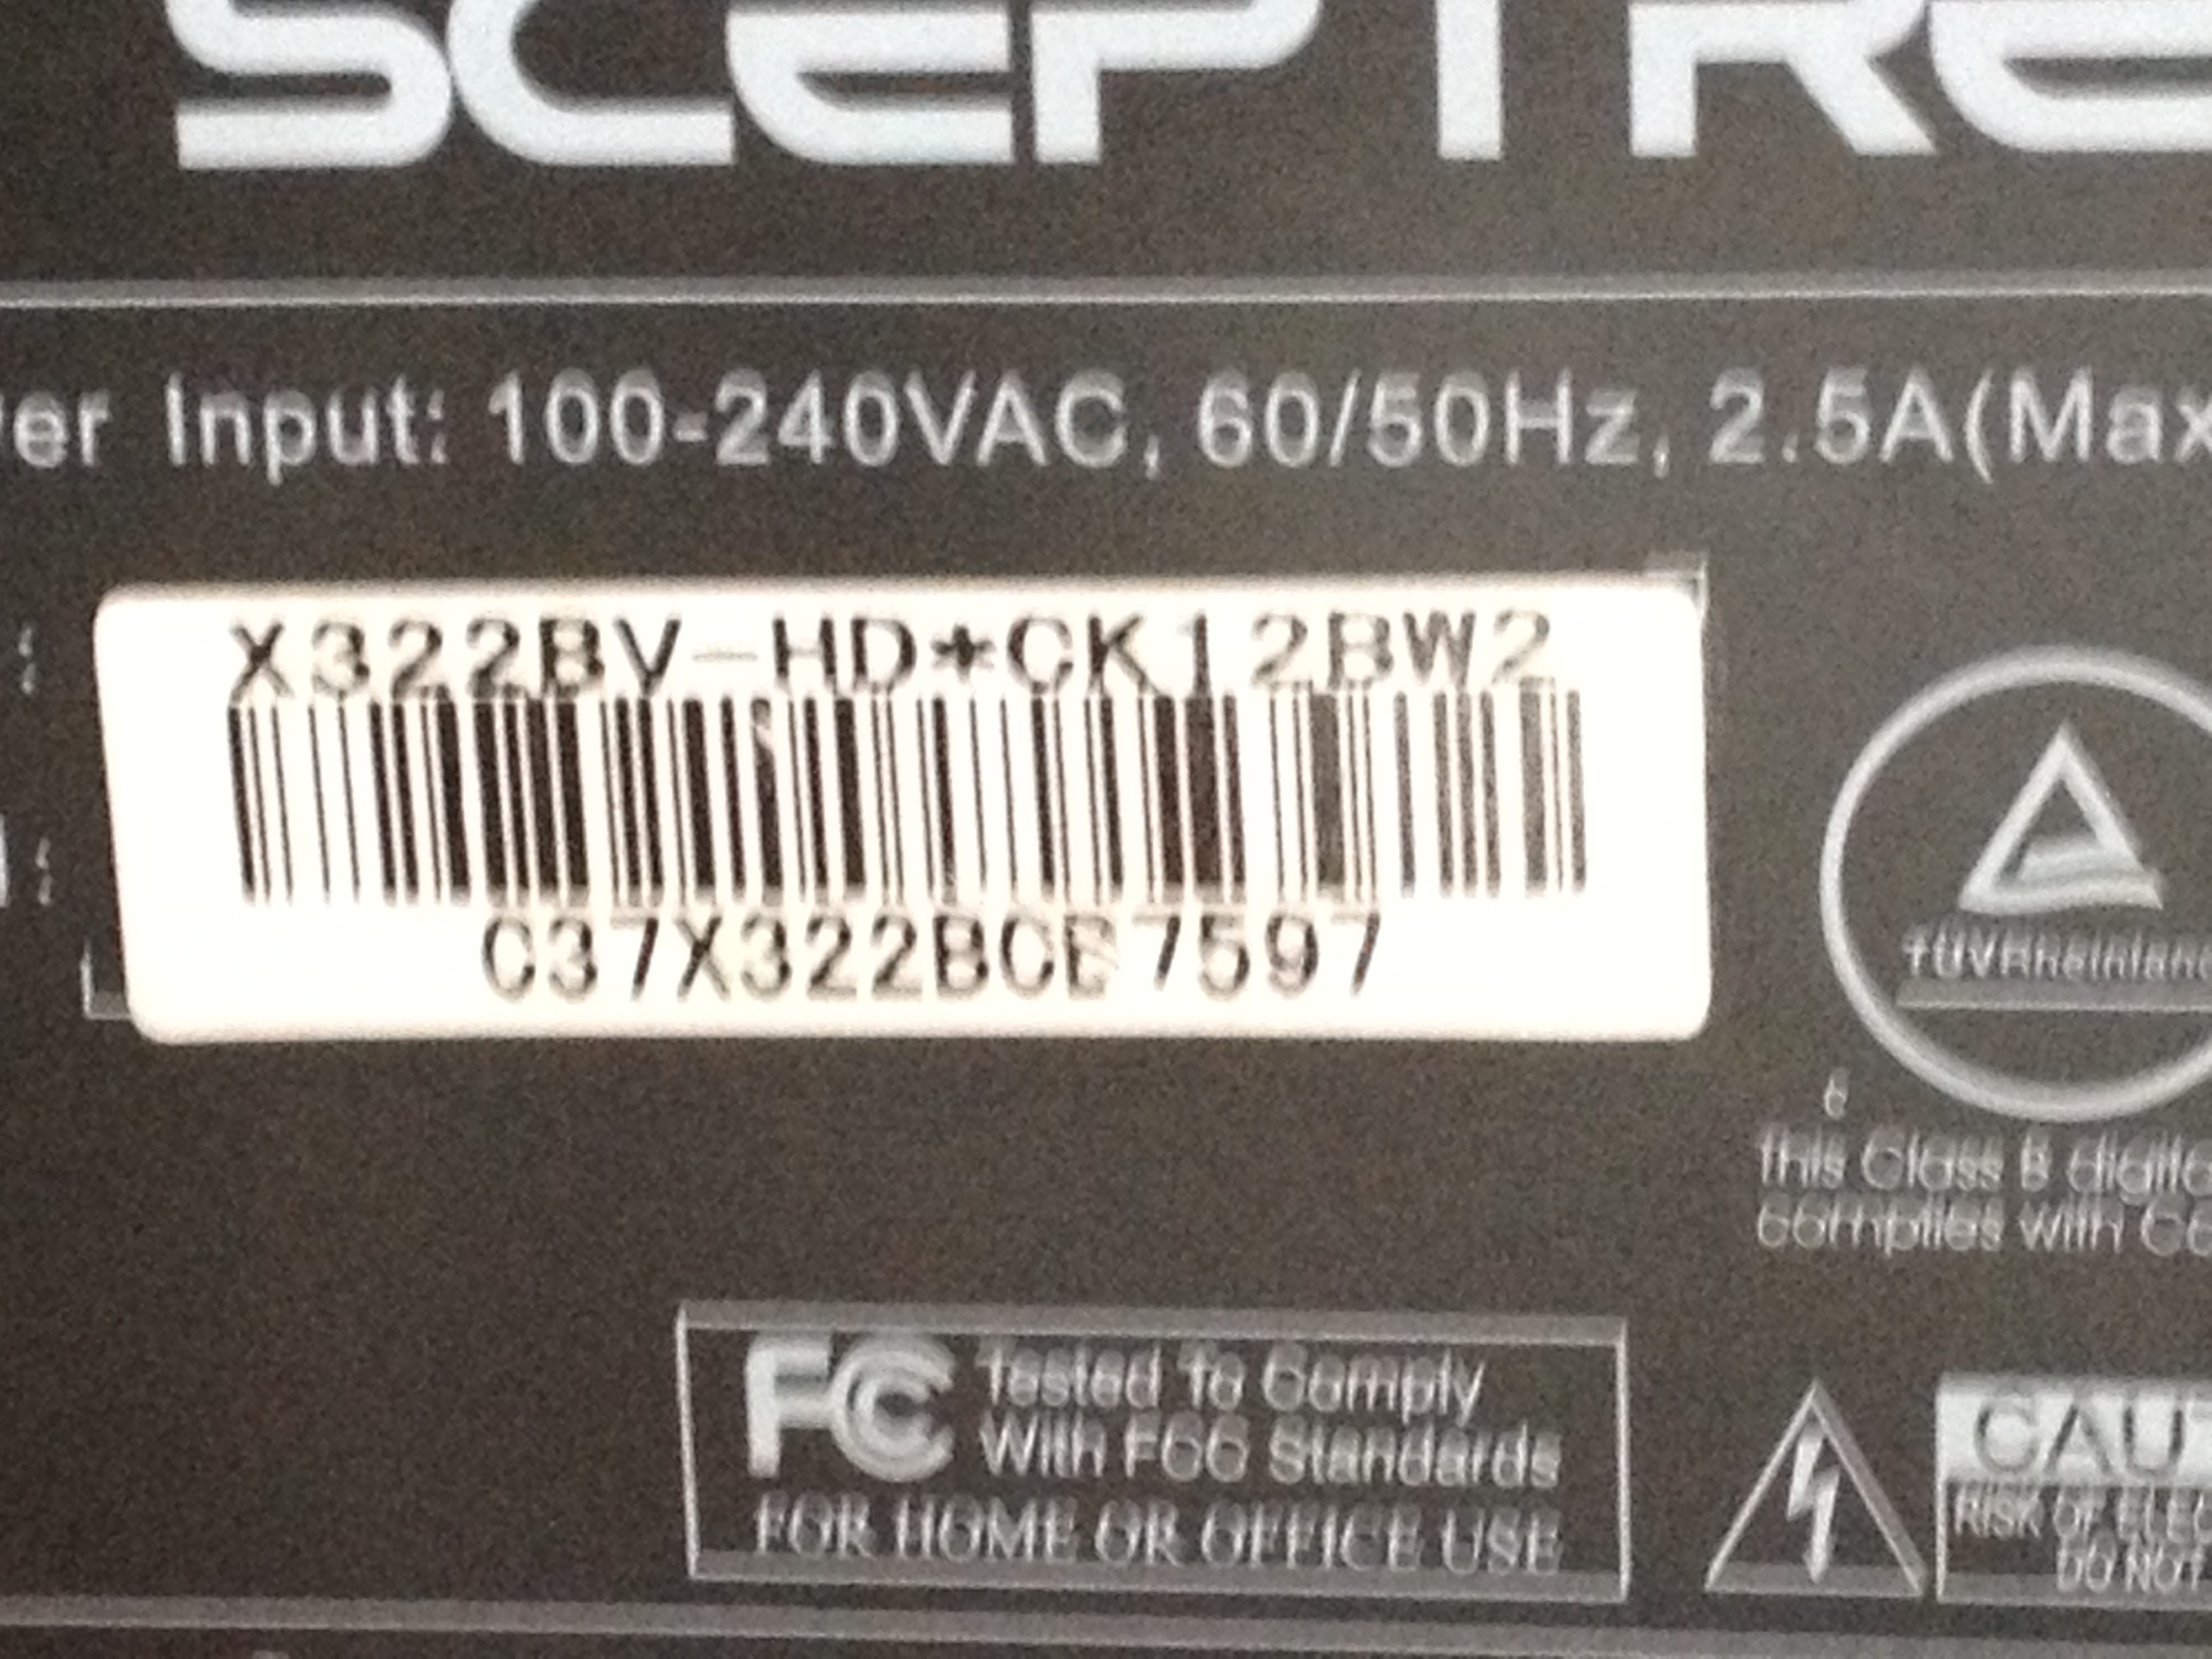 I Have A Sceptre X322bv Hd Ck12bw2 That The Power Light Comes On